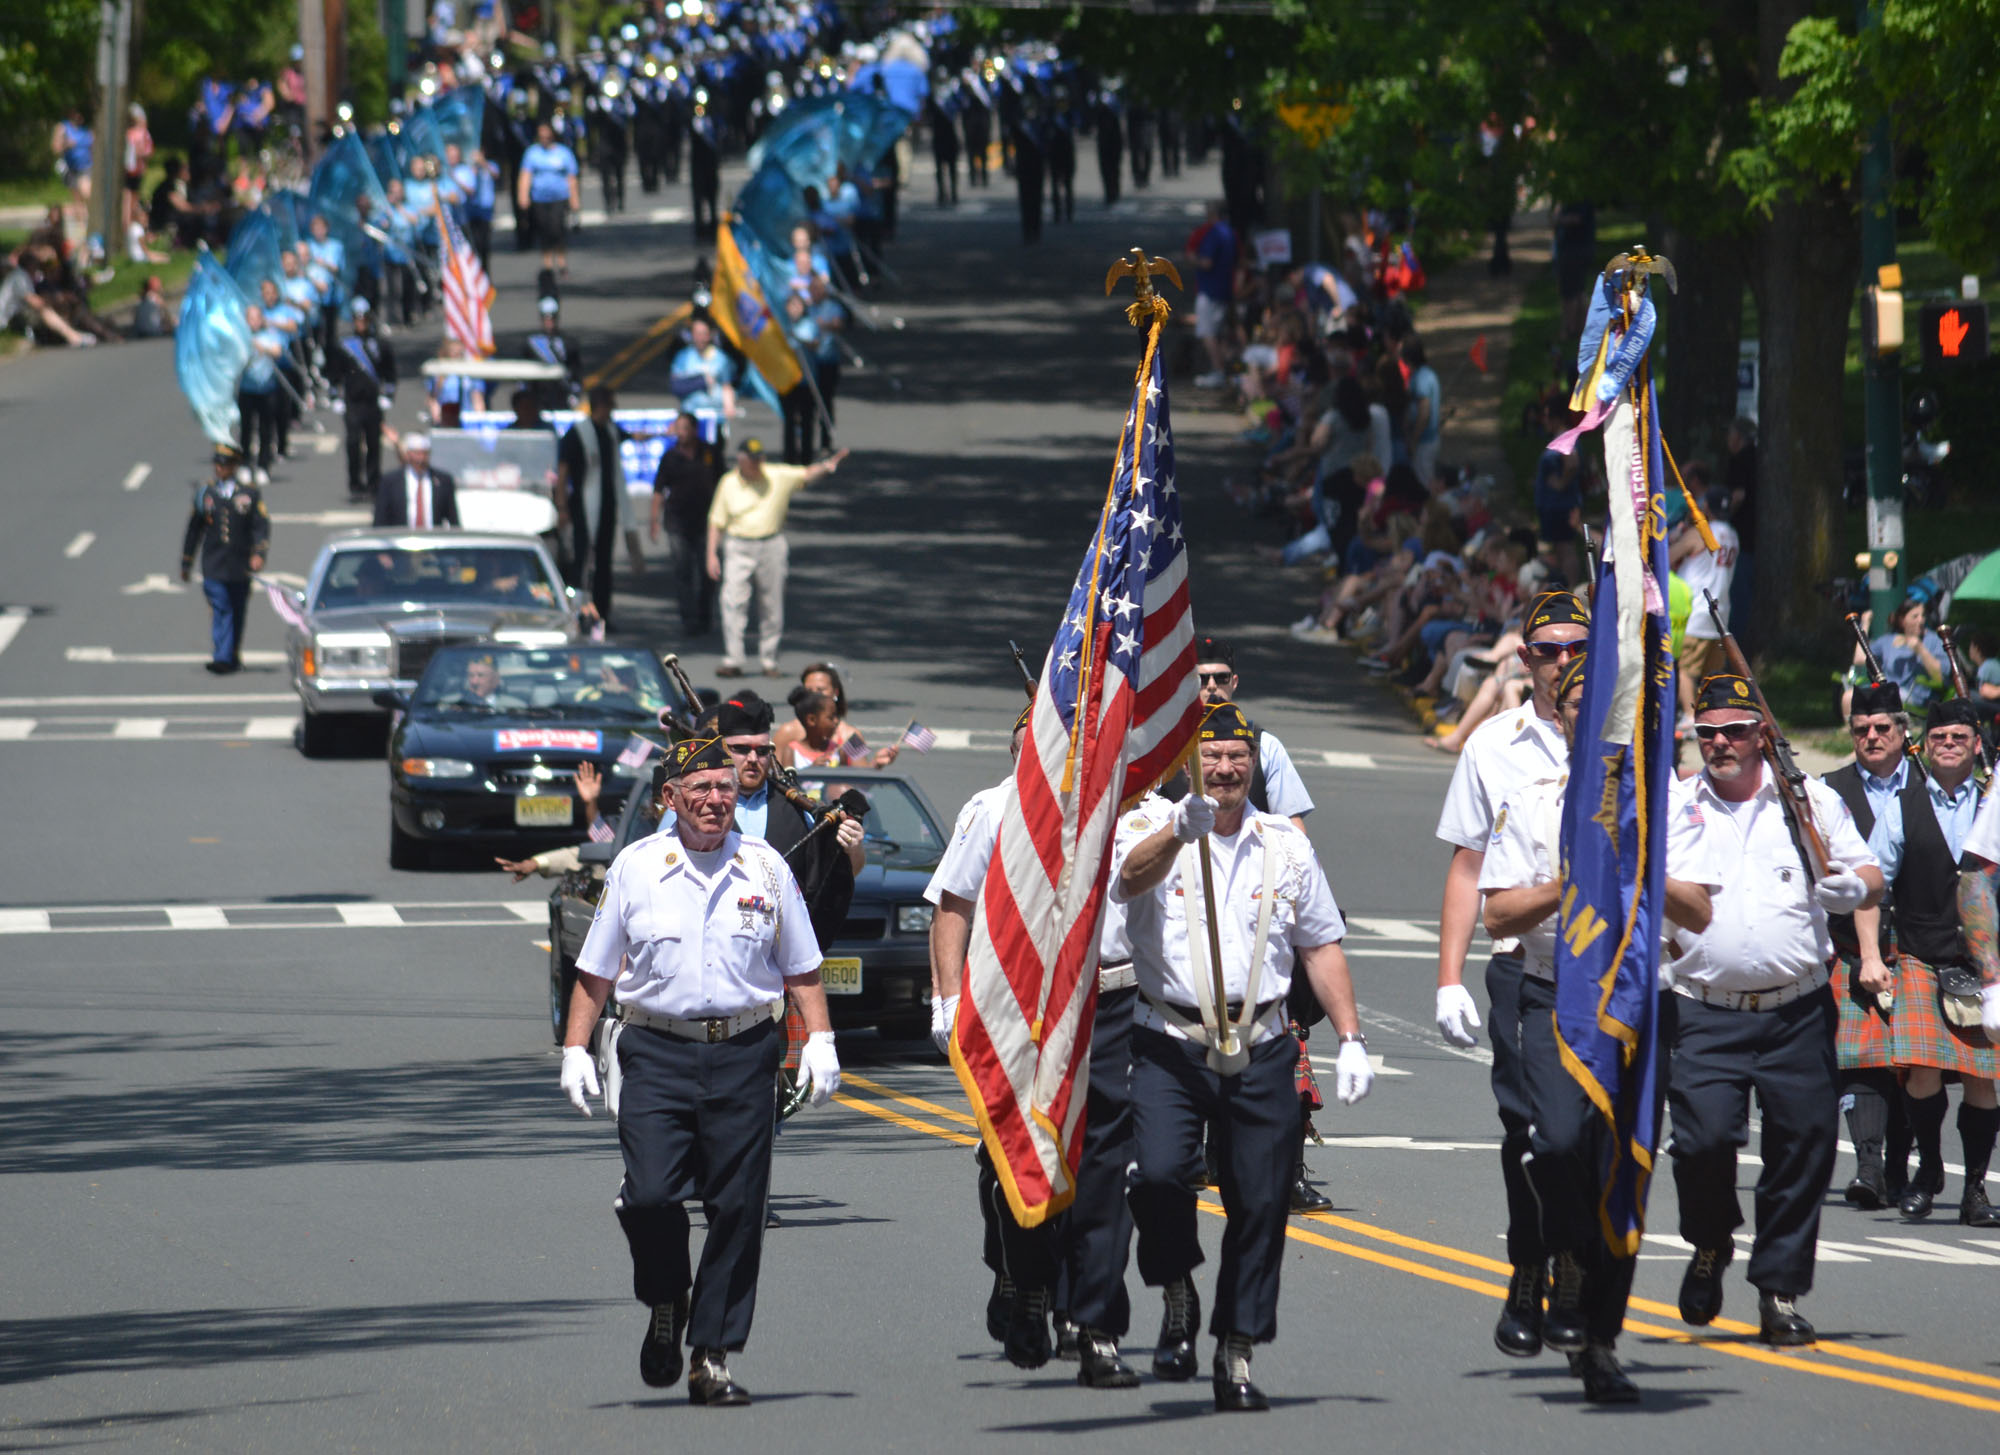 31086b9c13485ba4724e_Memorial_Day_Parade_-_Horton_photo.jpg